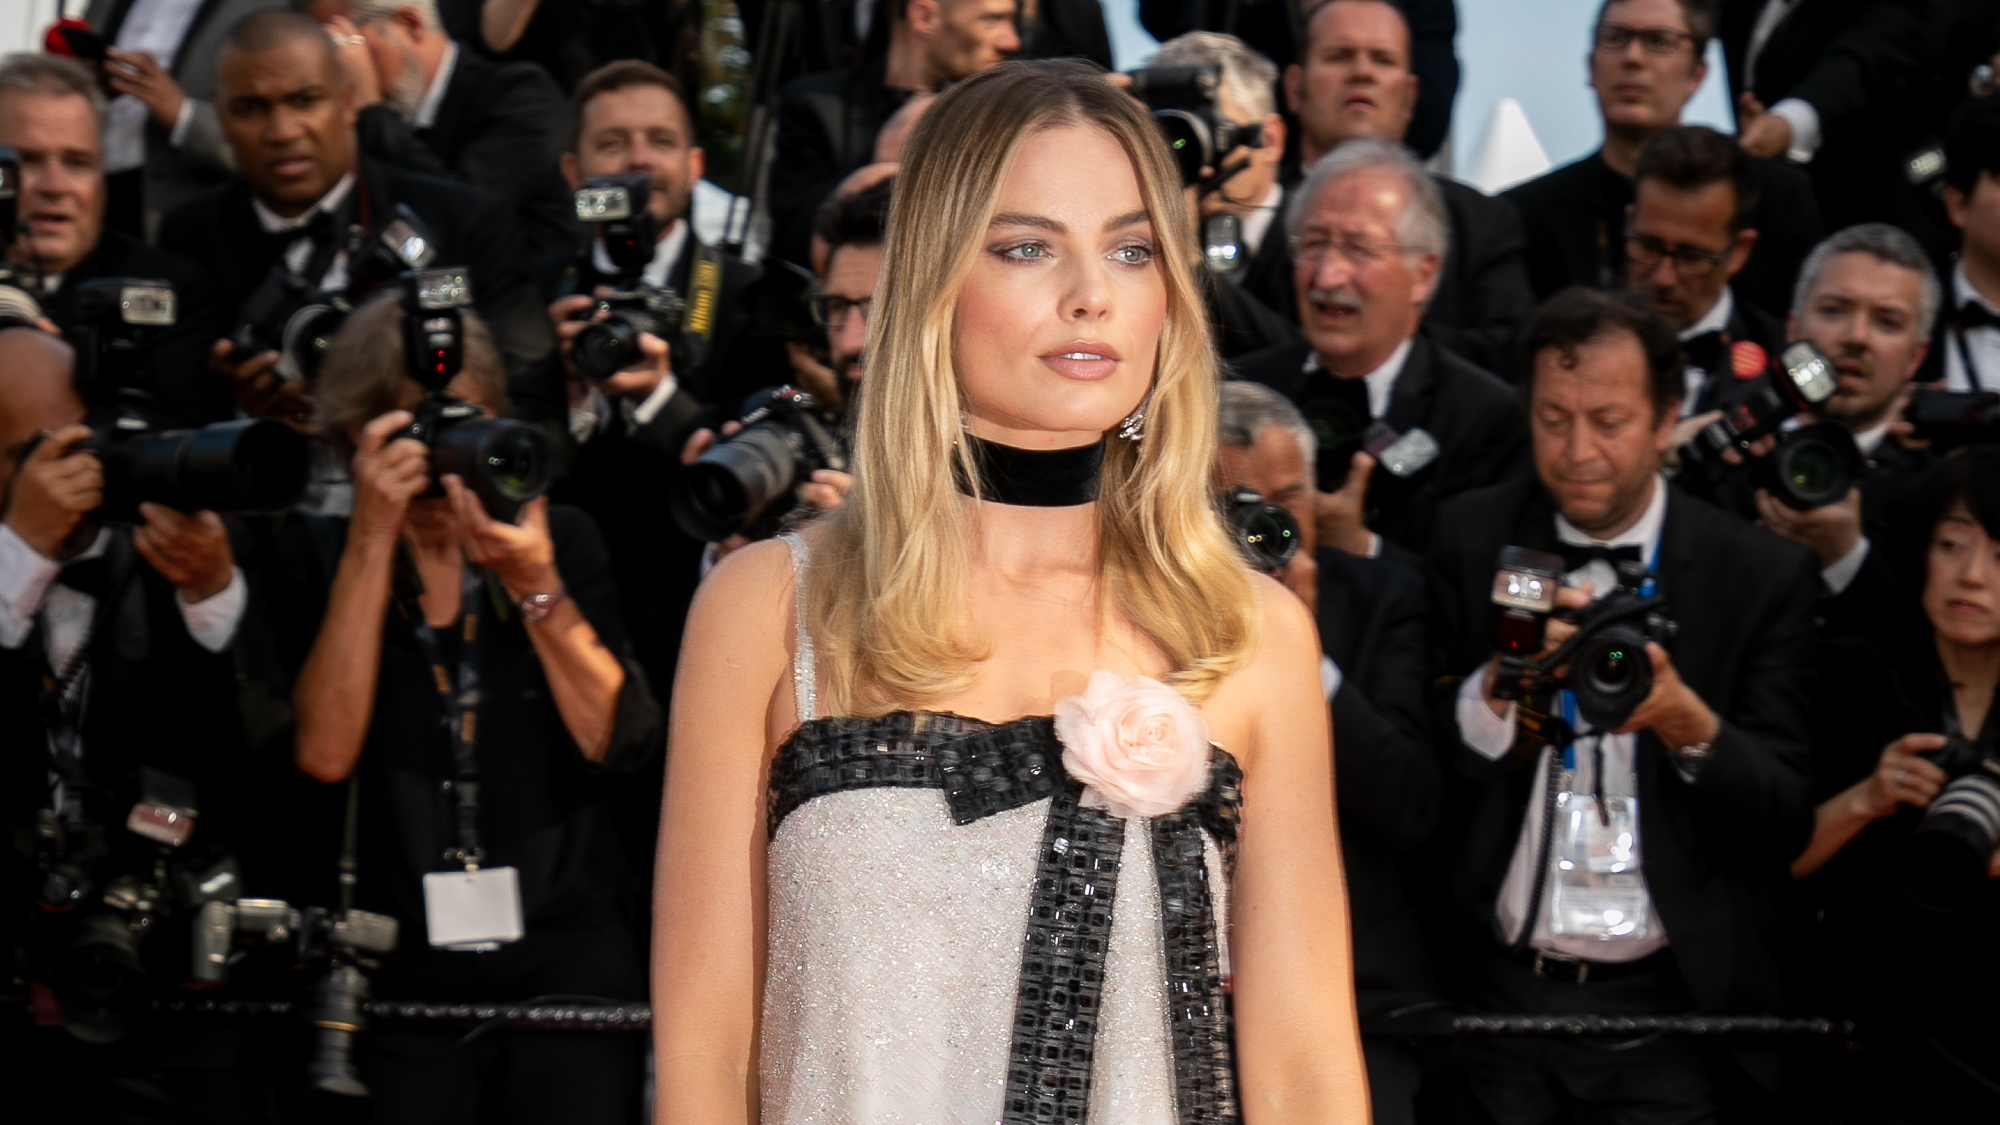 Margot Robbie Defends Her Limited Dialogue in 'Once Upon a Time in Hollywood'